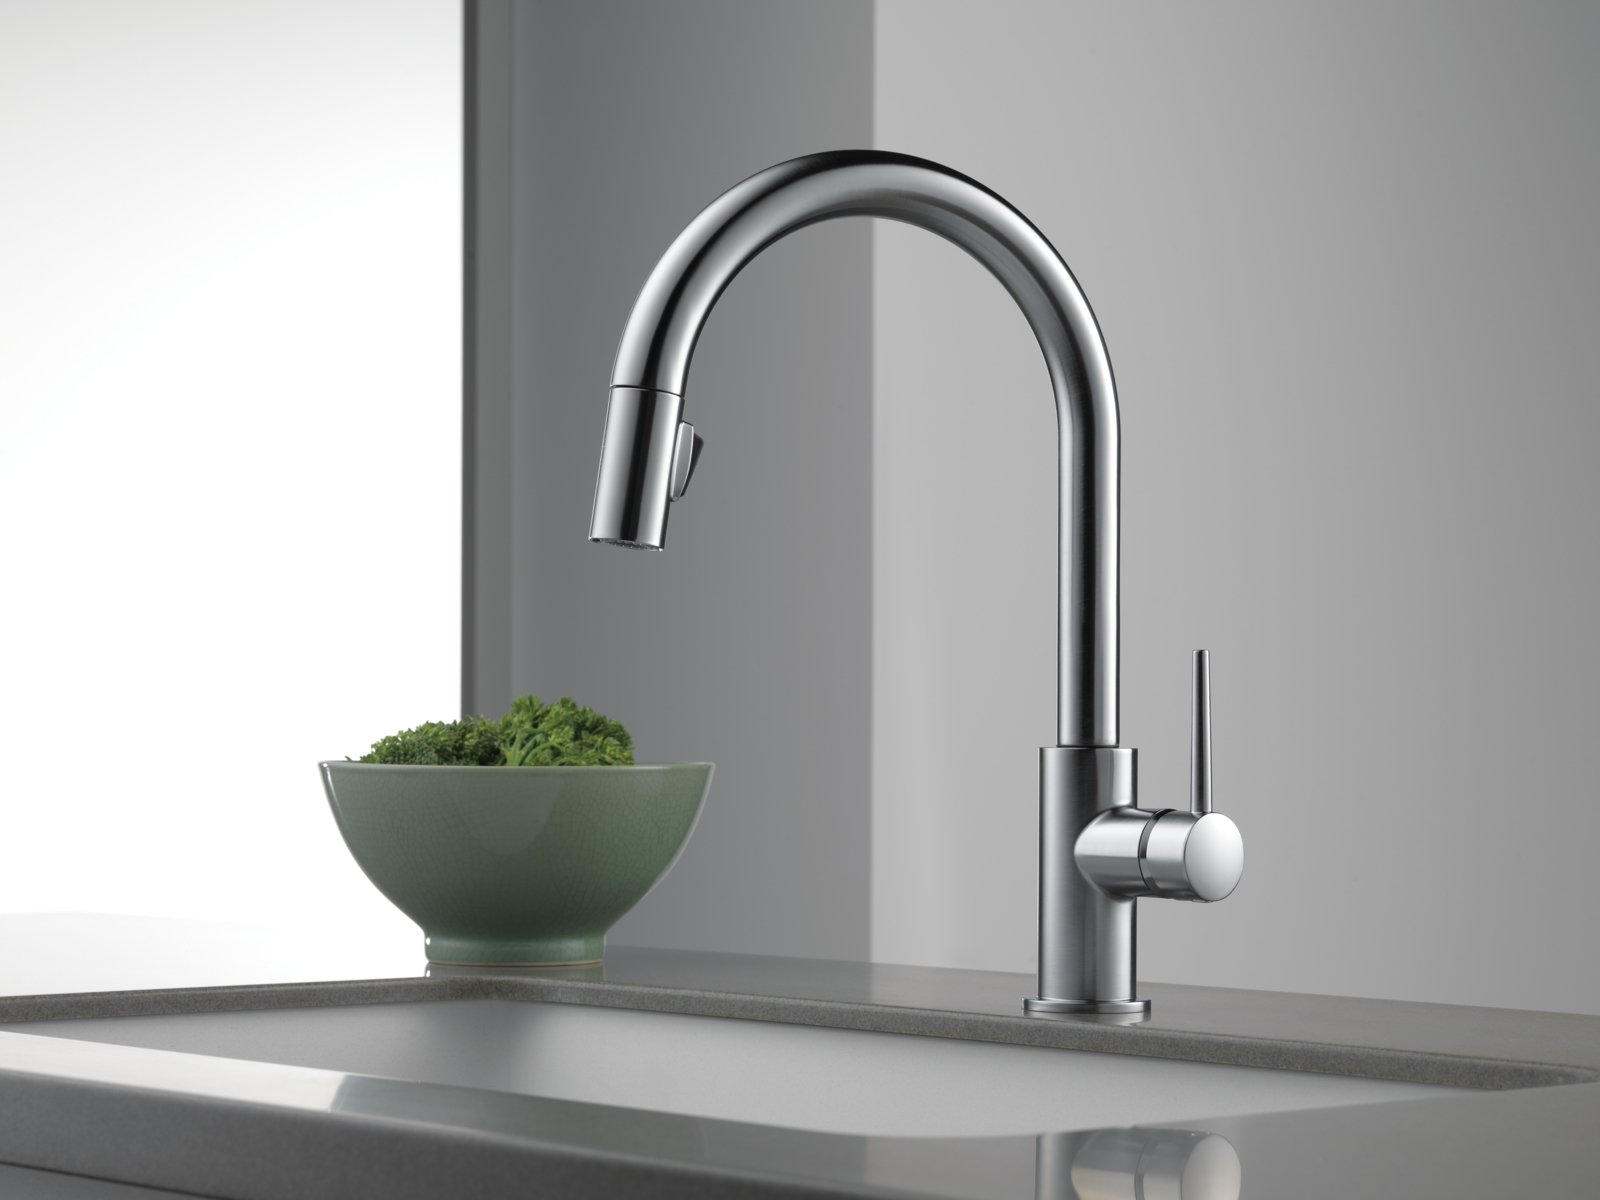 Ideas, trinsic kitchen collection kitchen faucets pot fillers and inside sizing 1600 x 1200  .